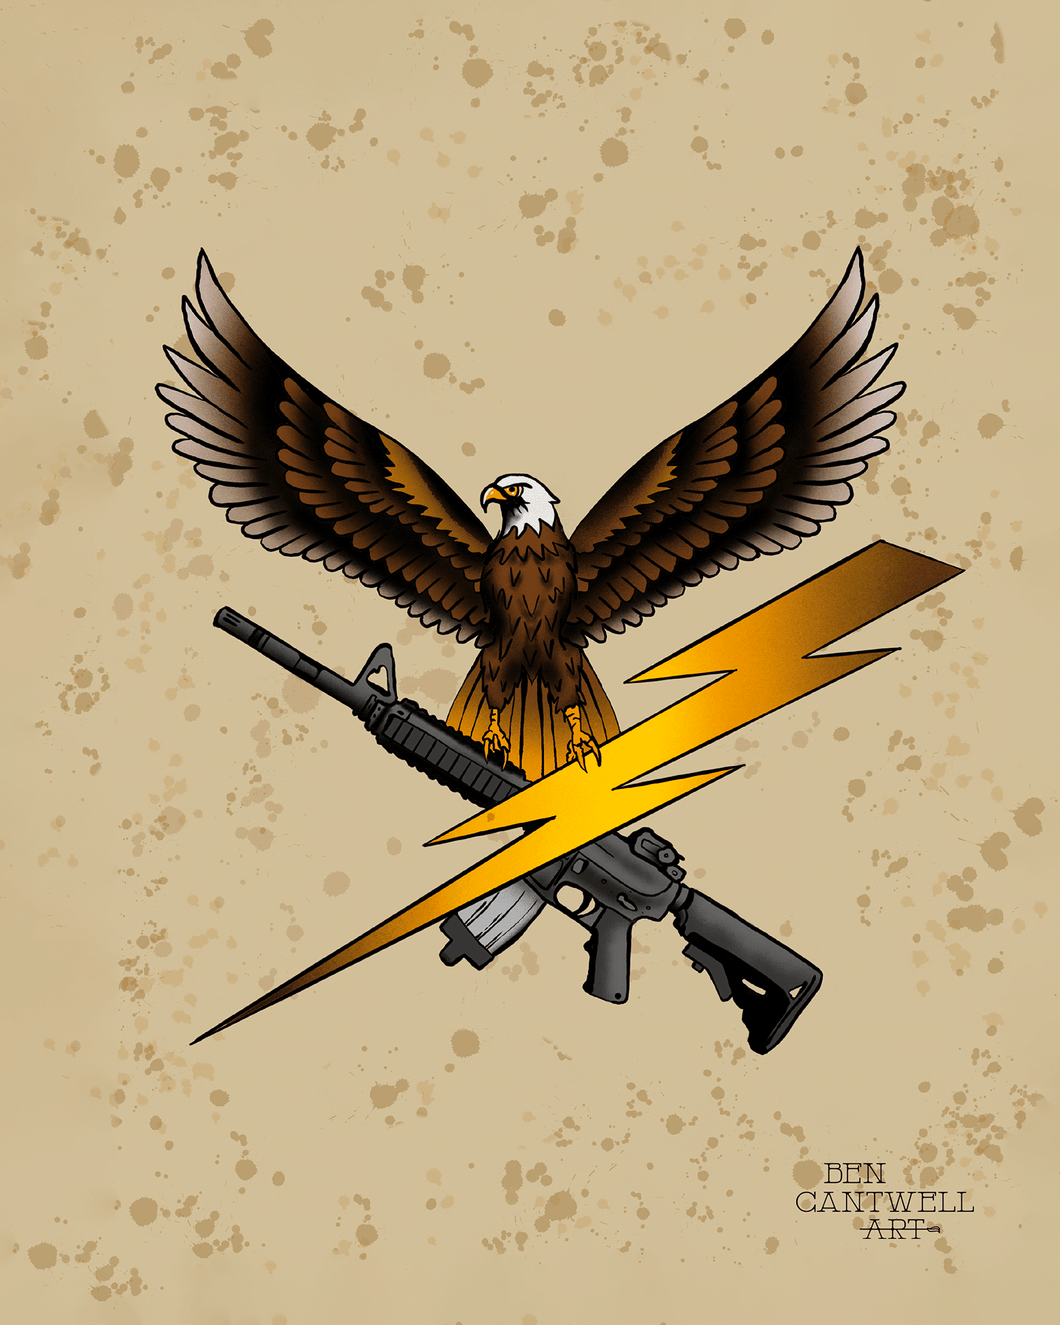 Eagle, Lightning Bolt And Rifle